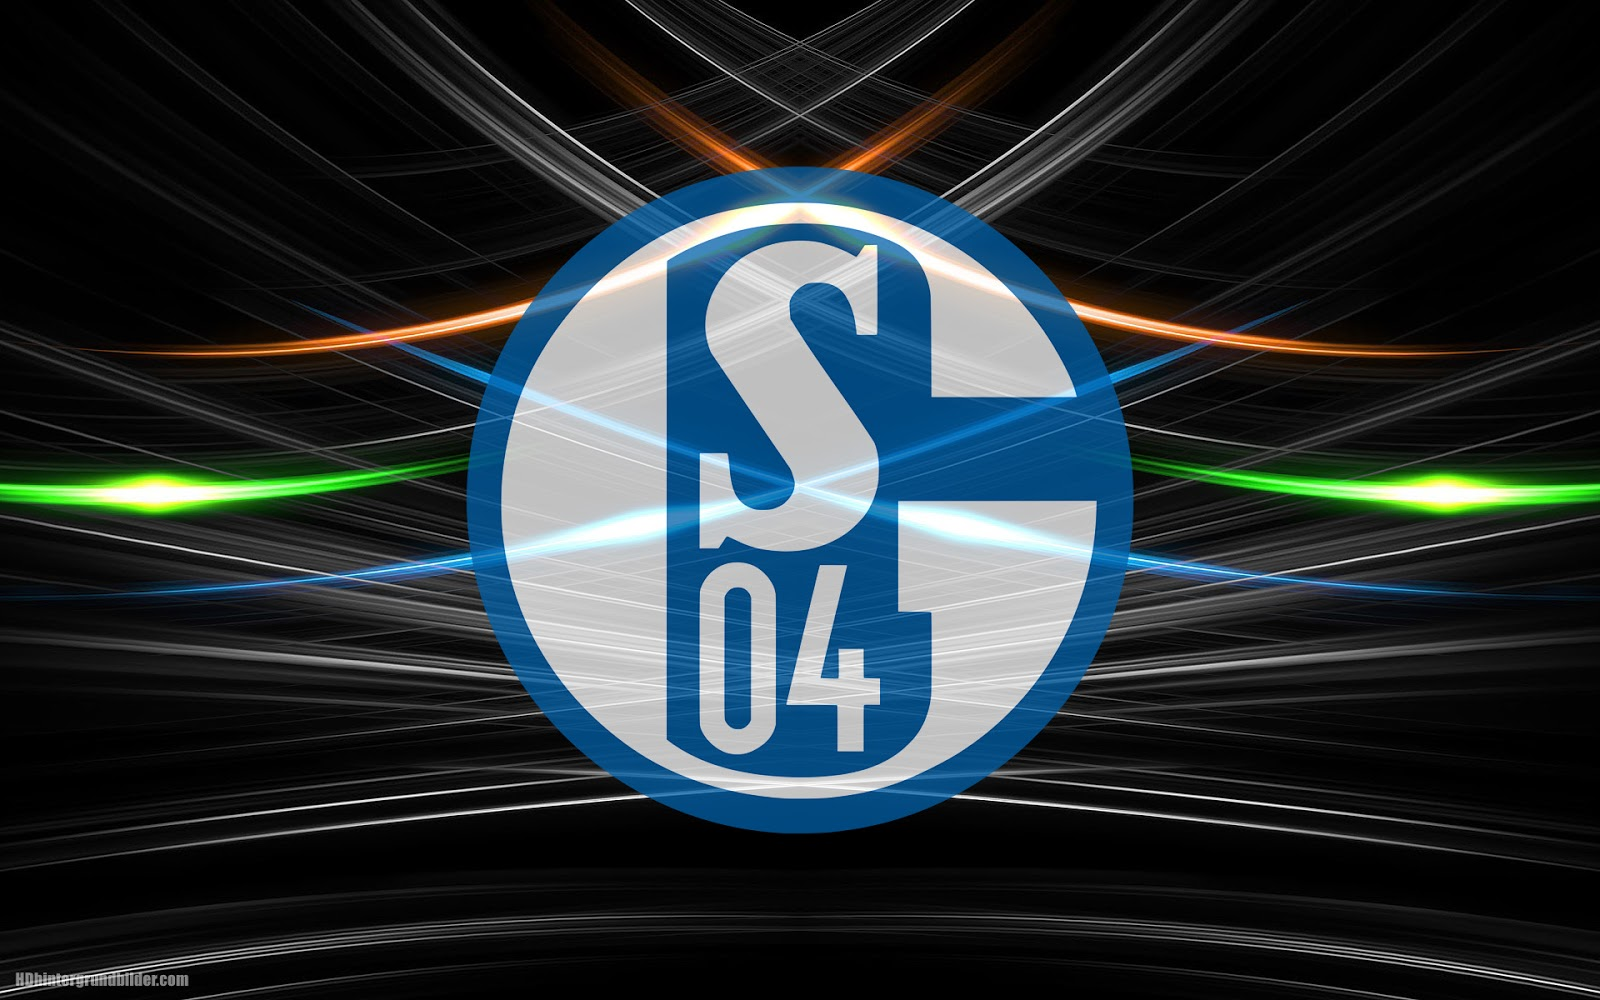 fc schalke 04 wallpapers hd hintergrundbilder. Black Bedroom Furniture Sets. Home Design Ideas